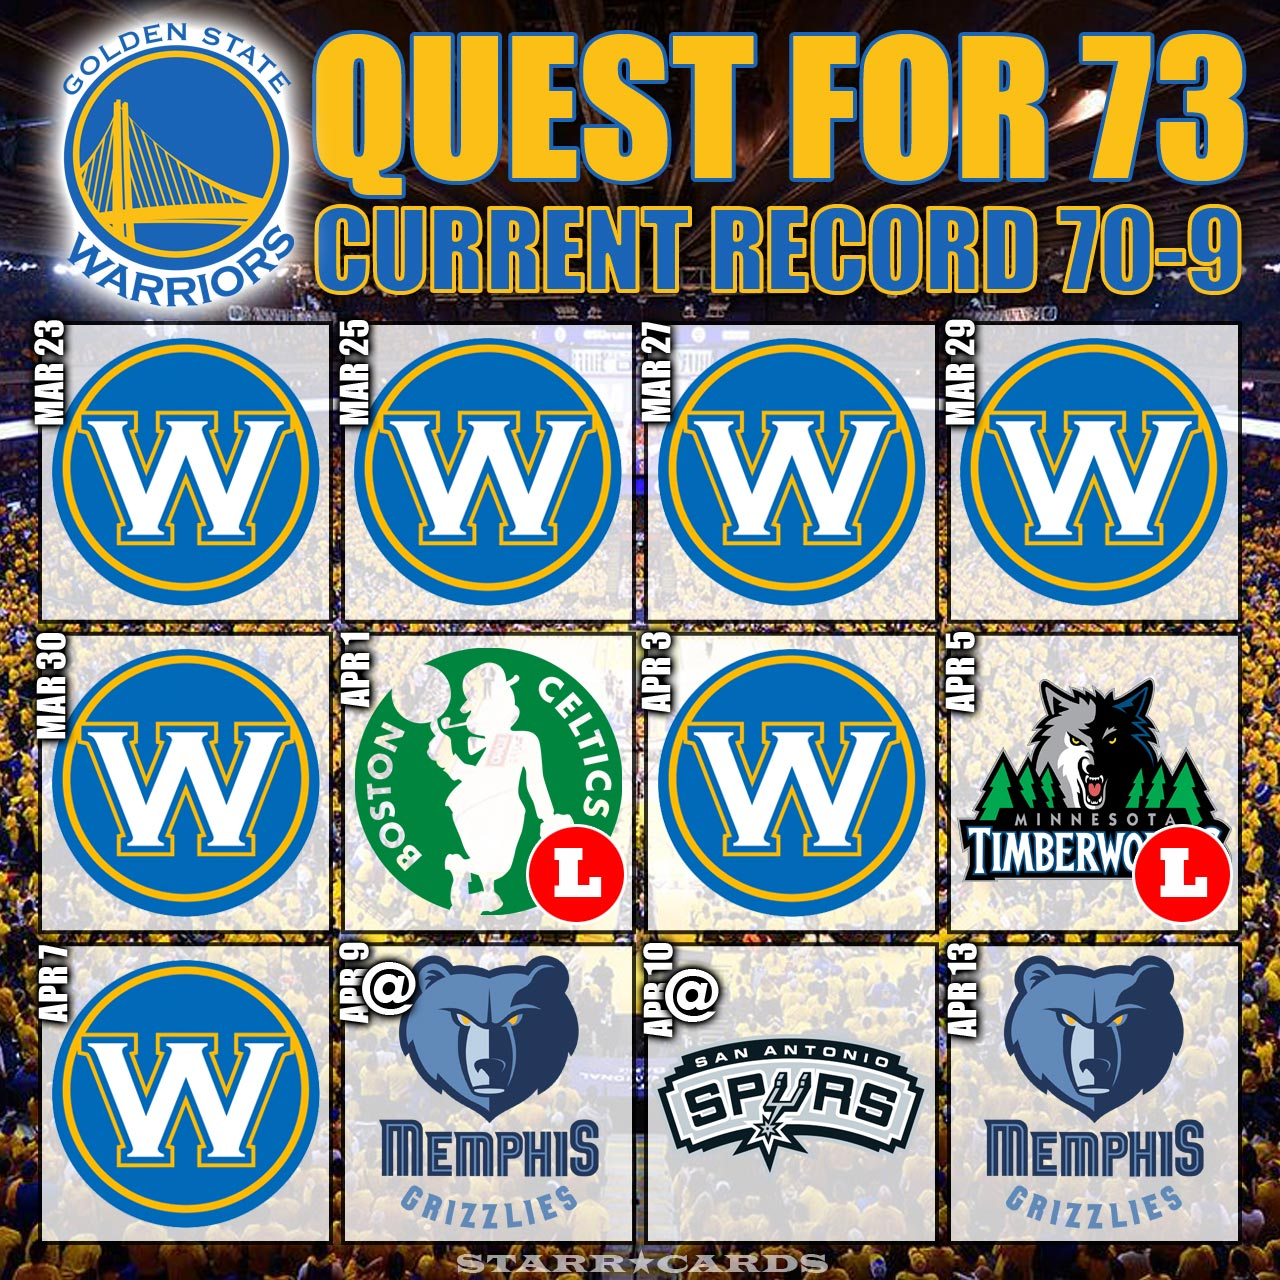 Quest for 73: Warriors move to 70-9 after defeating Spurs